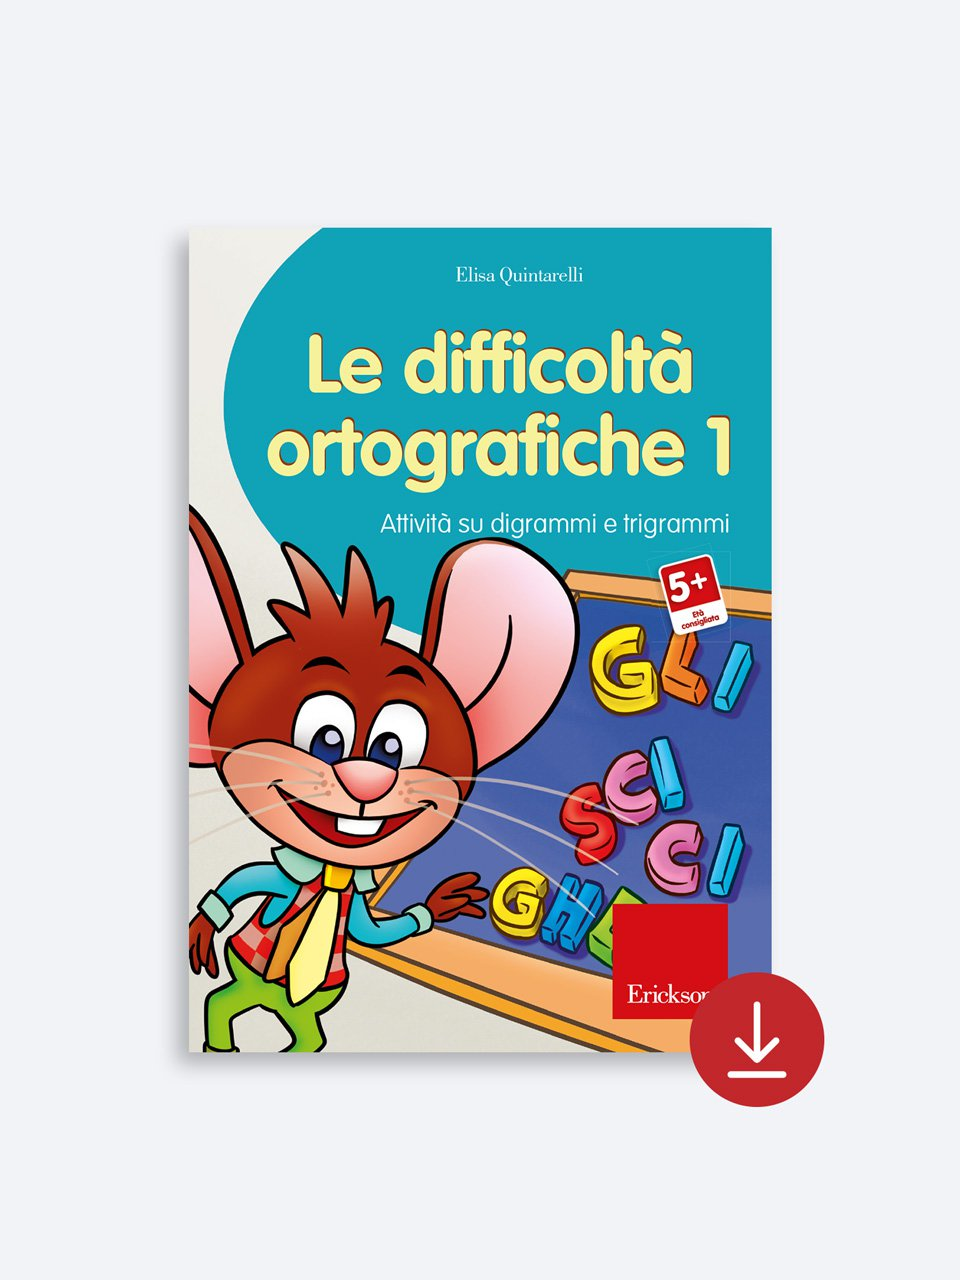 Le difficoltà ortografiche - Volume 1 Download - Erickson Eshop